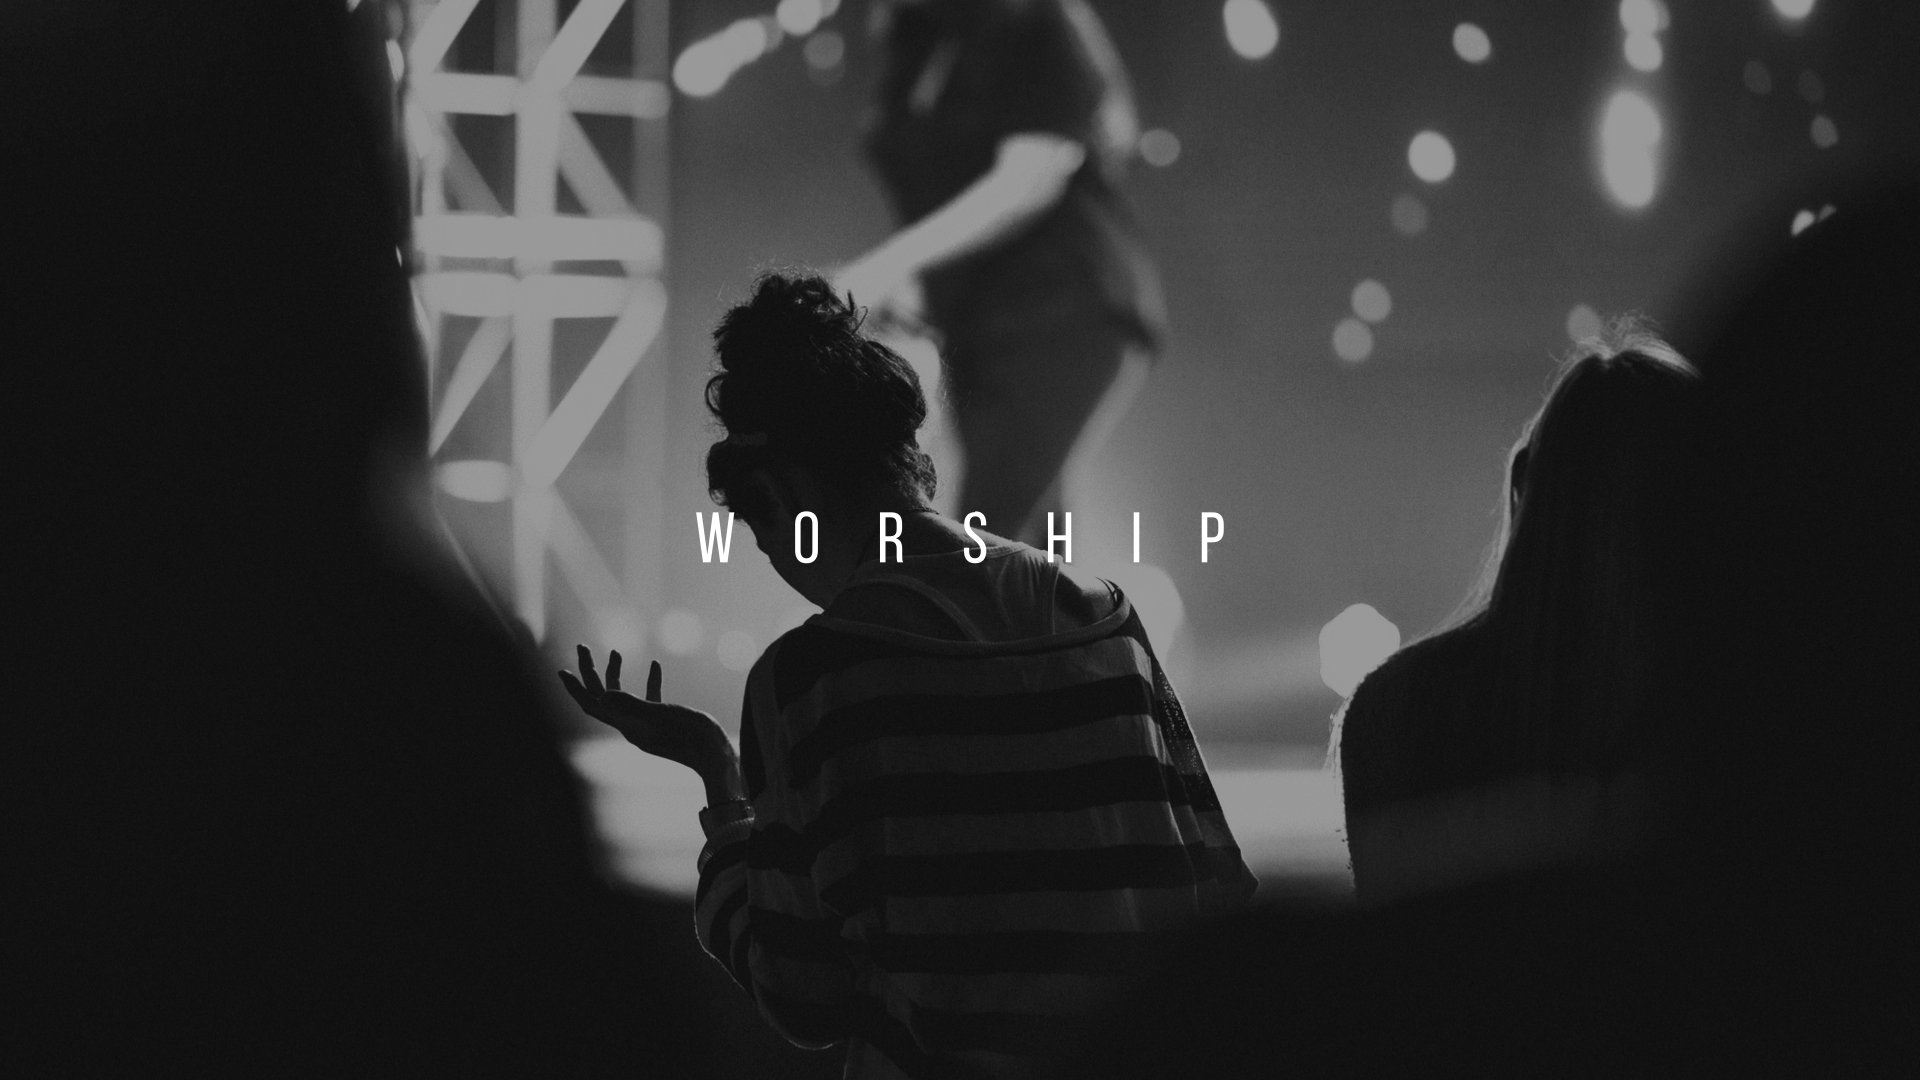 04/07/19 - A Sacrifice Of Worship